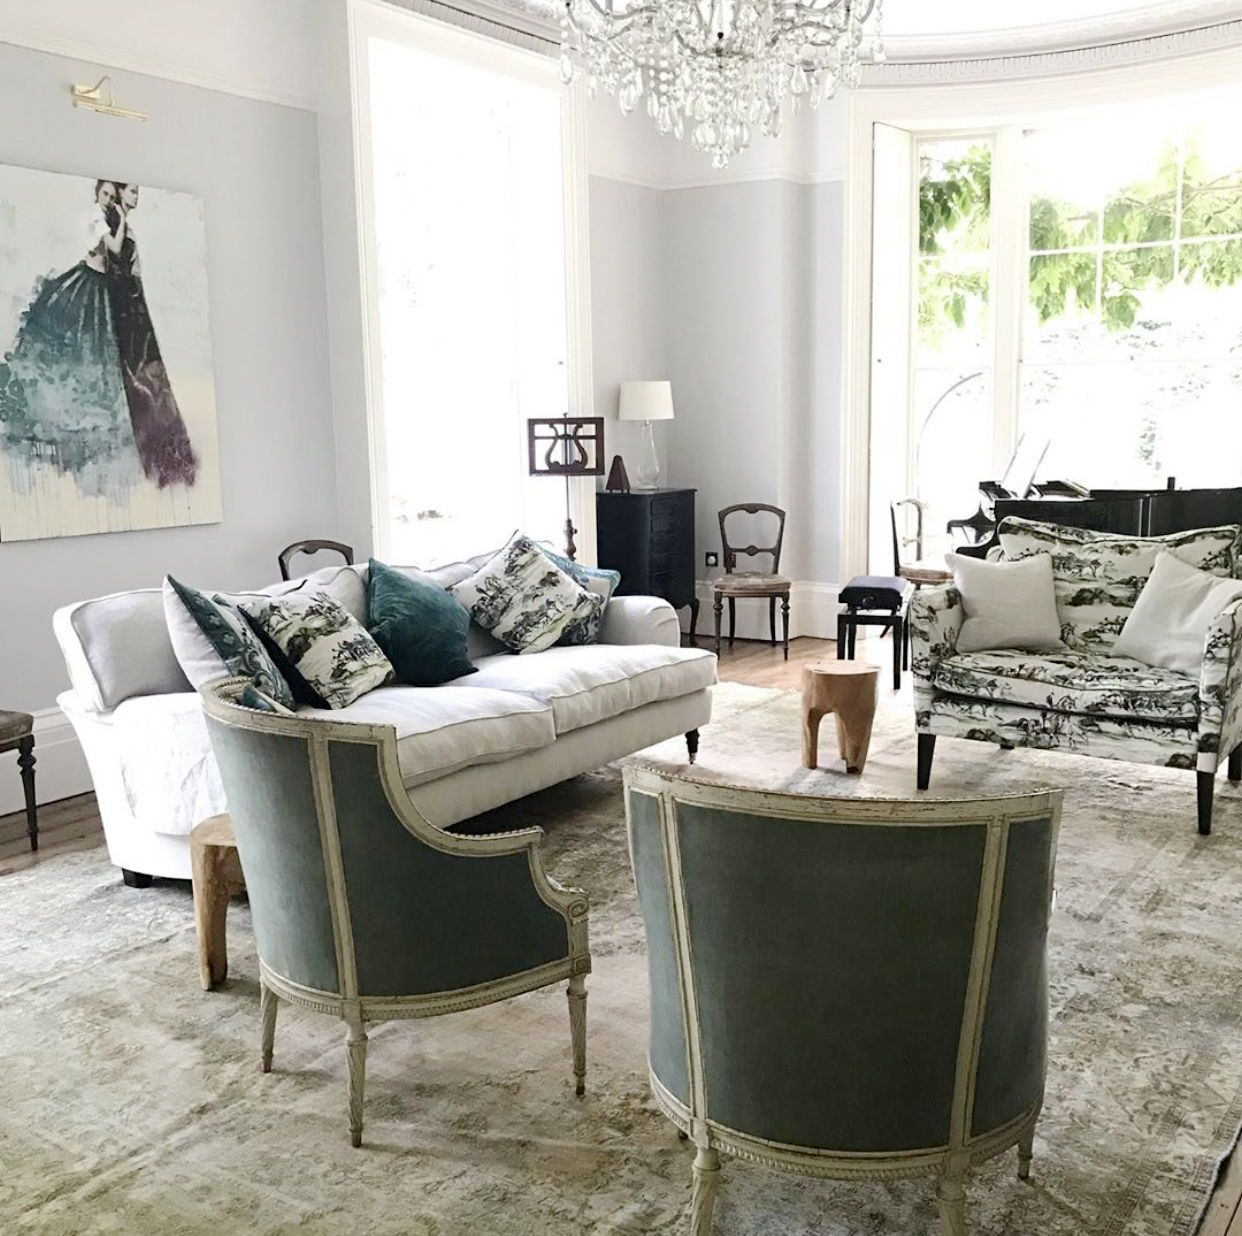 Drawing Room Goals A Soft Neutral Palette Of Greens And Blues Is So Elegant Grounding The Space With A L Sitting Room Decor Sofa Inspiration Furniture Doctor